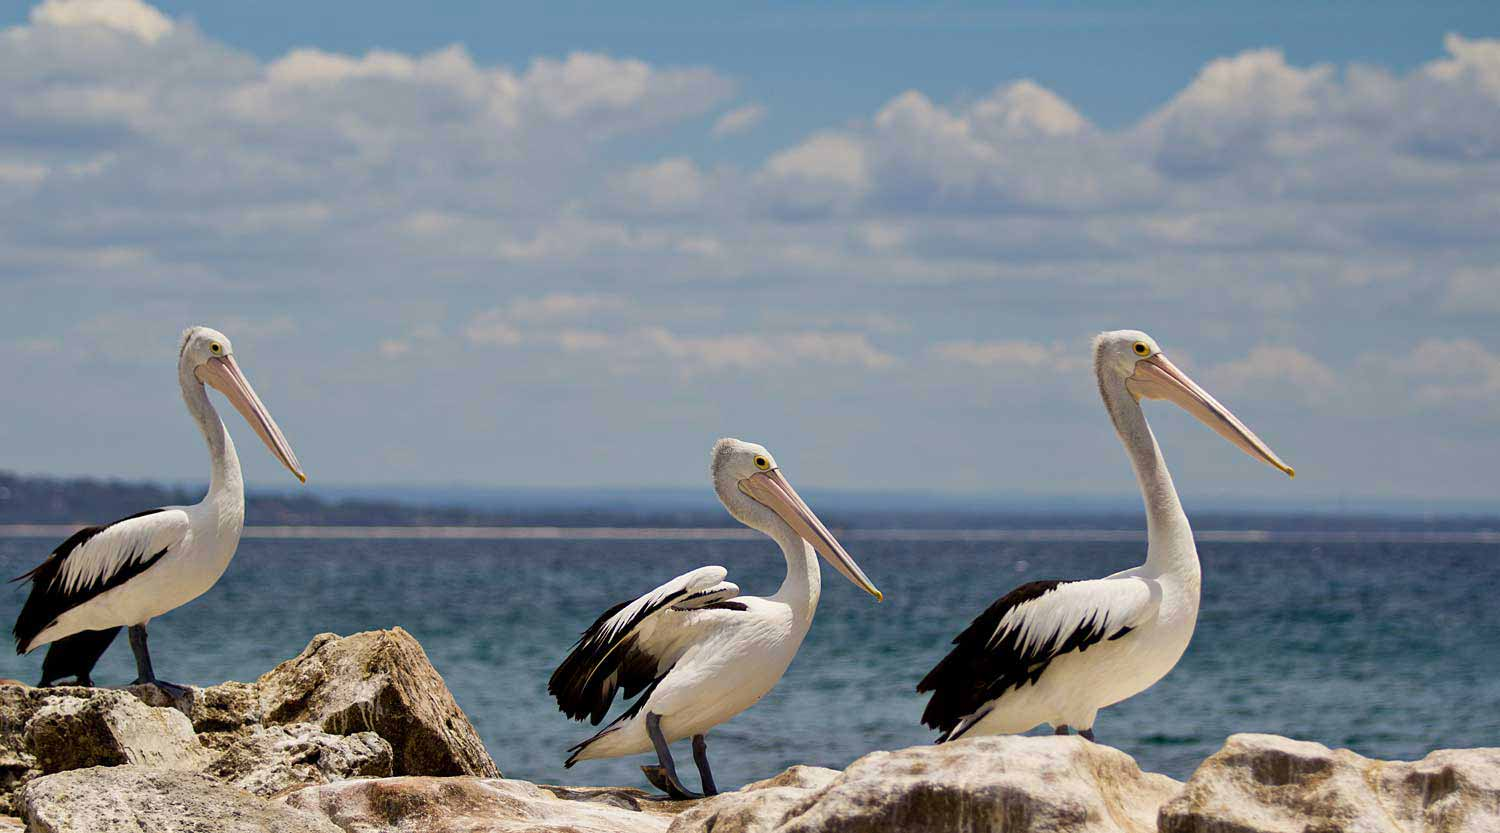 Pelicans at Booderee